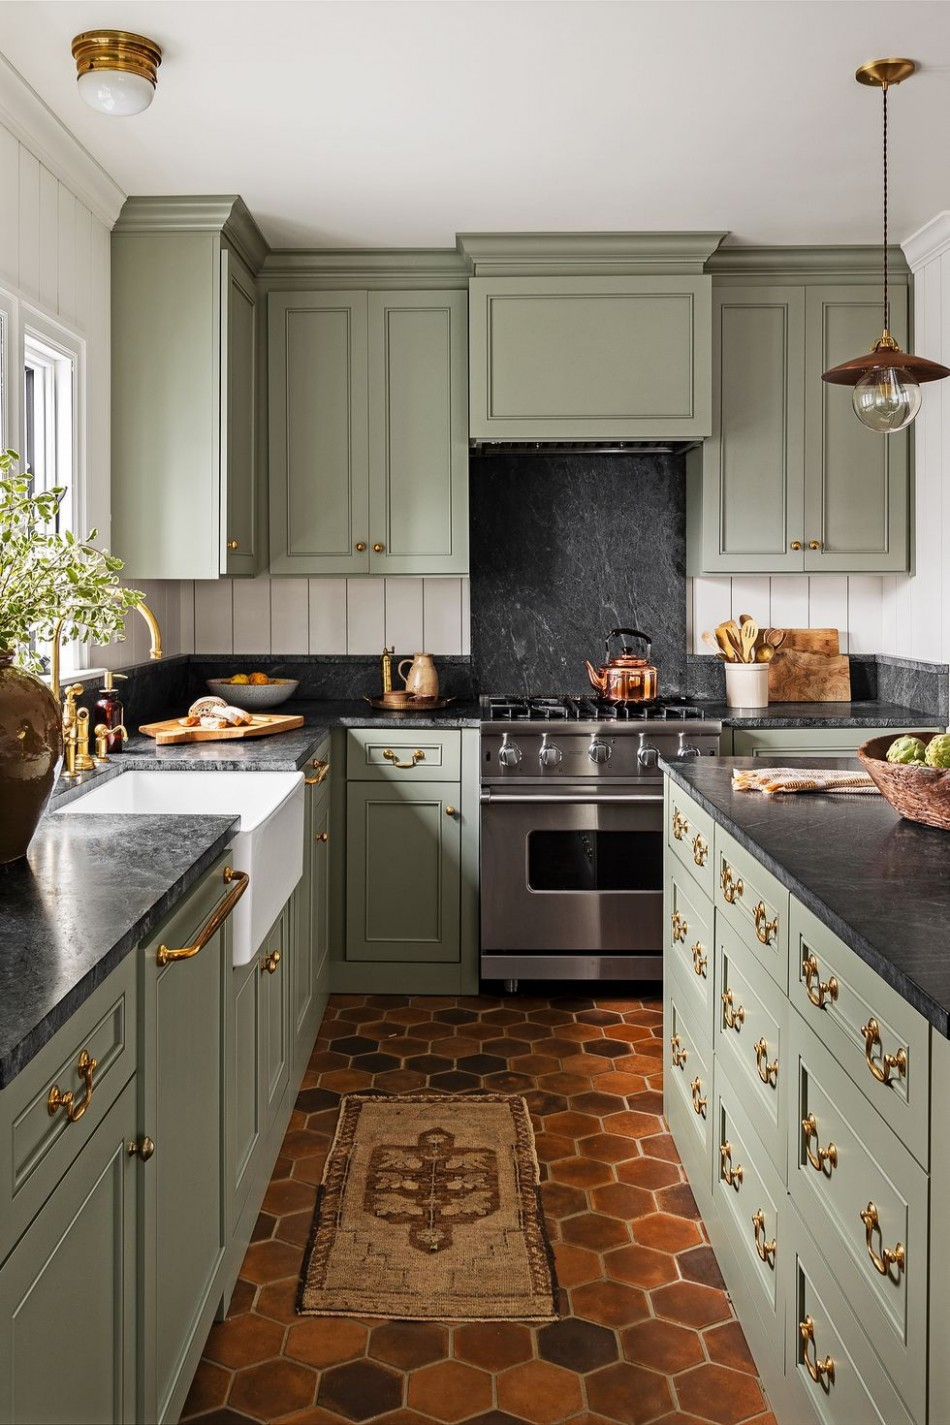 8 Best Green Kitchen Cabinet Ideas - Top Green Paint Colors for  - Green Kitchen With Dark Cabinet